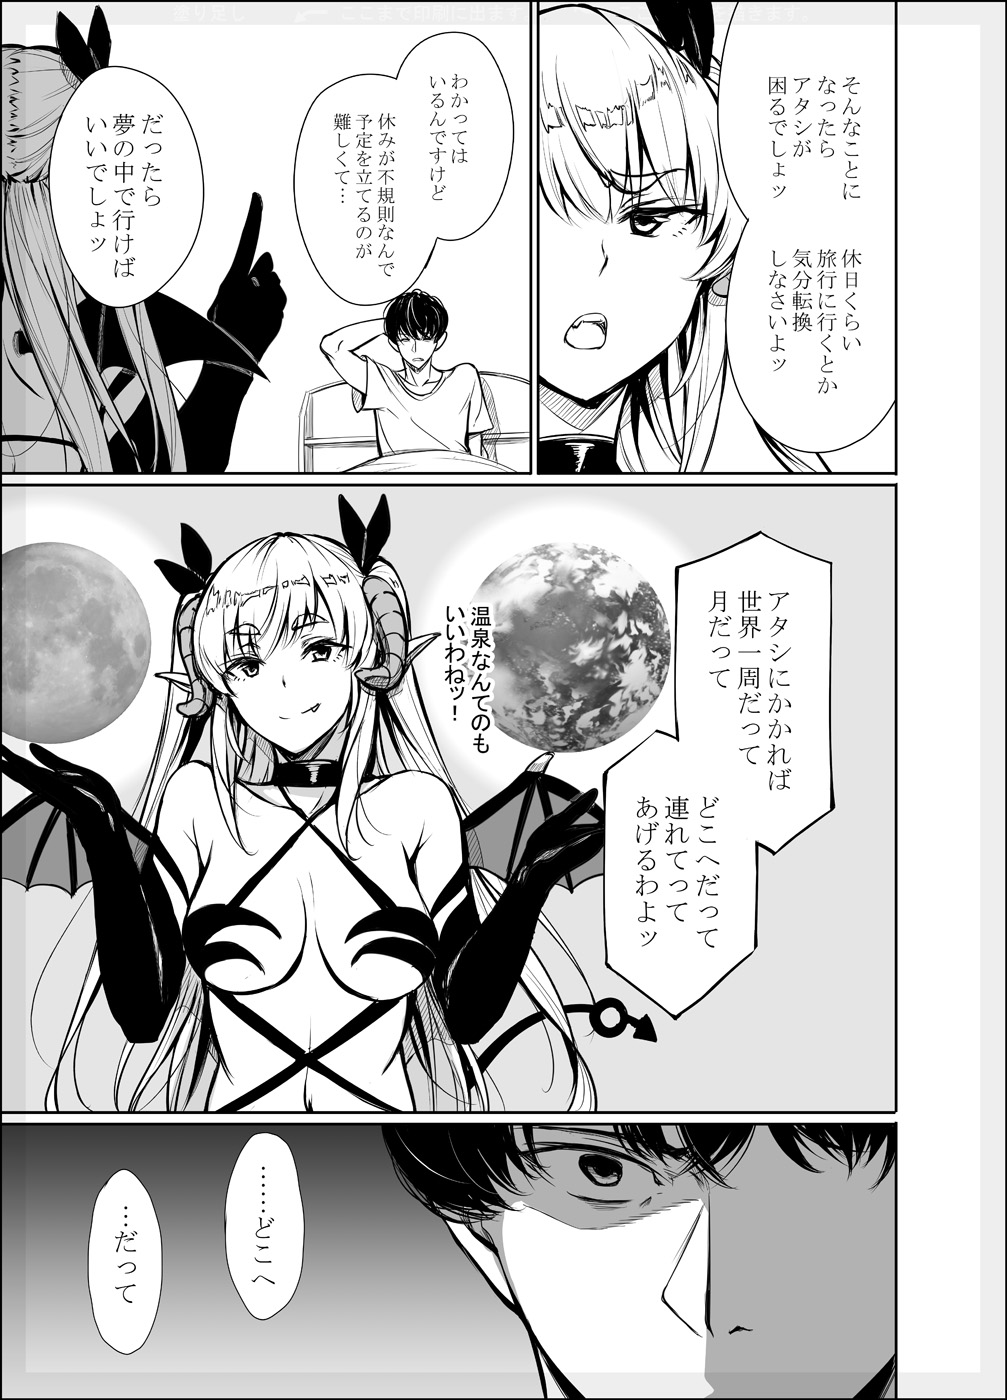 1boy 1girl comic demon_girl demon_horns demon_tail demon_wings earth eyebrows_visible_through_hair fang_out gentsuki greyscale highres horns index_finger_raised kuroki_tsutomu lily_(gentsuki) monochrome moon original pointy_ears revealing_clothes shaded_face speech_bubble succubus tail thick_eyebrows two_side_up wings